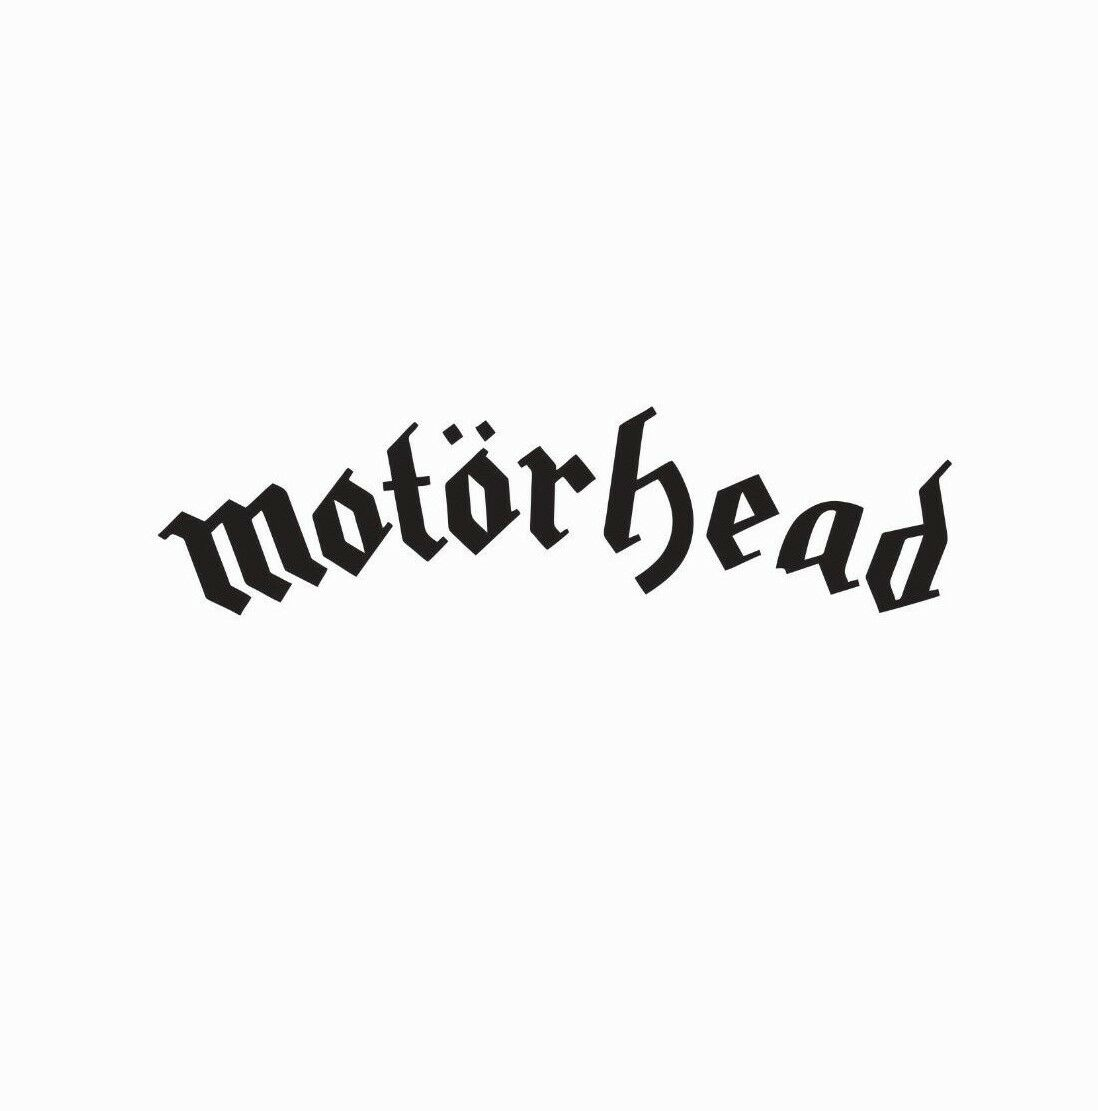 Home Decoration - Motorhead Music Band Vinyl Die Cut Car Decal Sticker-FREE SHIPPING